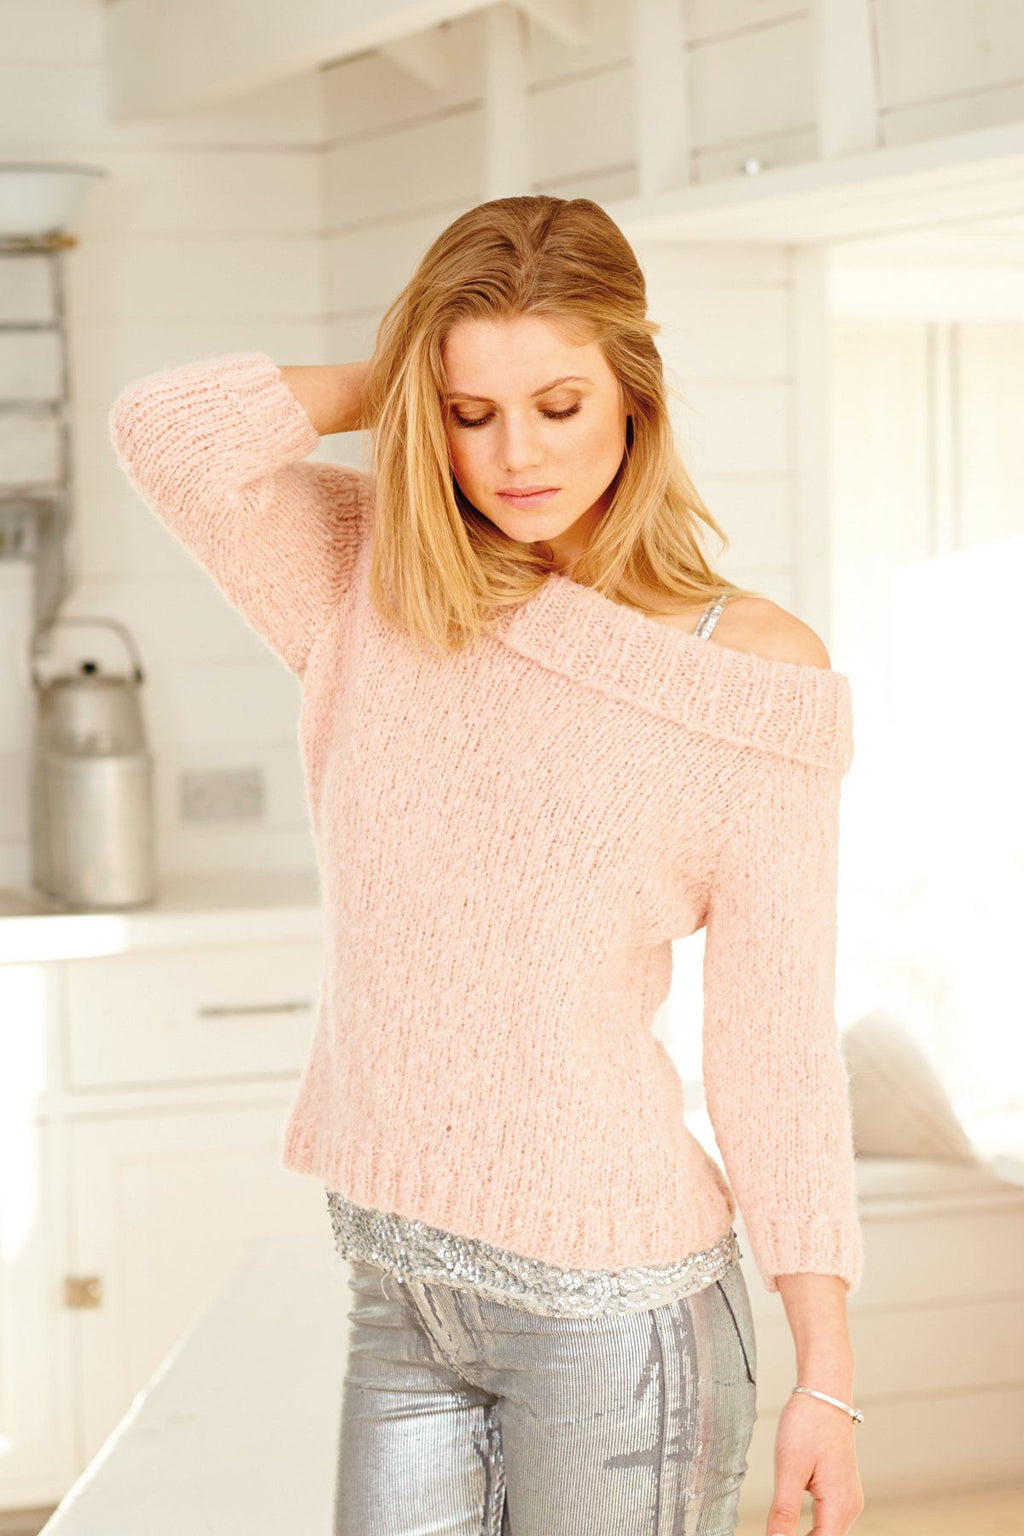 FASHION LIGHT LUXURY - Cardigan and Sweater Pattern Rico